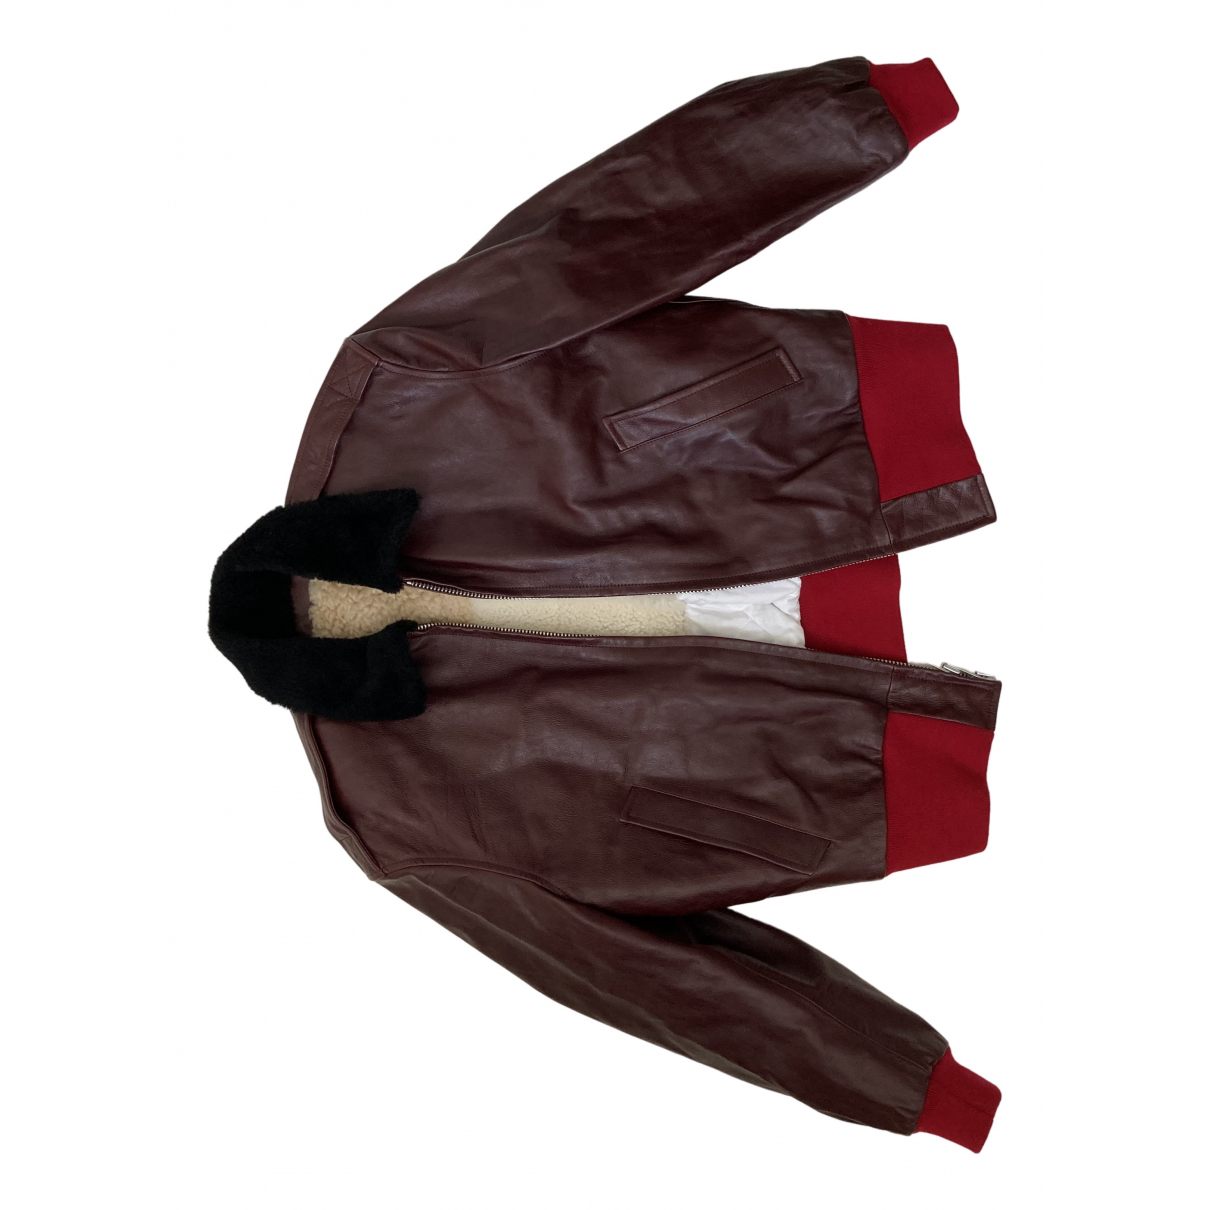 Calvin Klein 205w39nyc \N Burgundy Leather Leather jacket for Women 40 IT